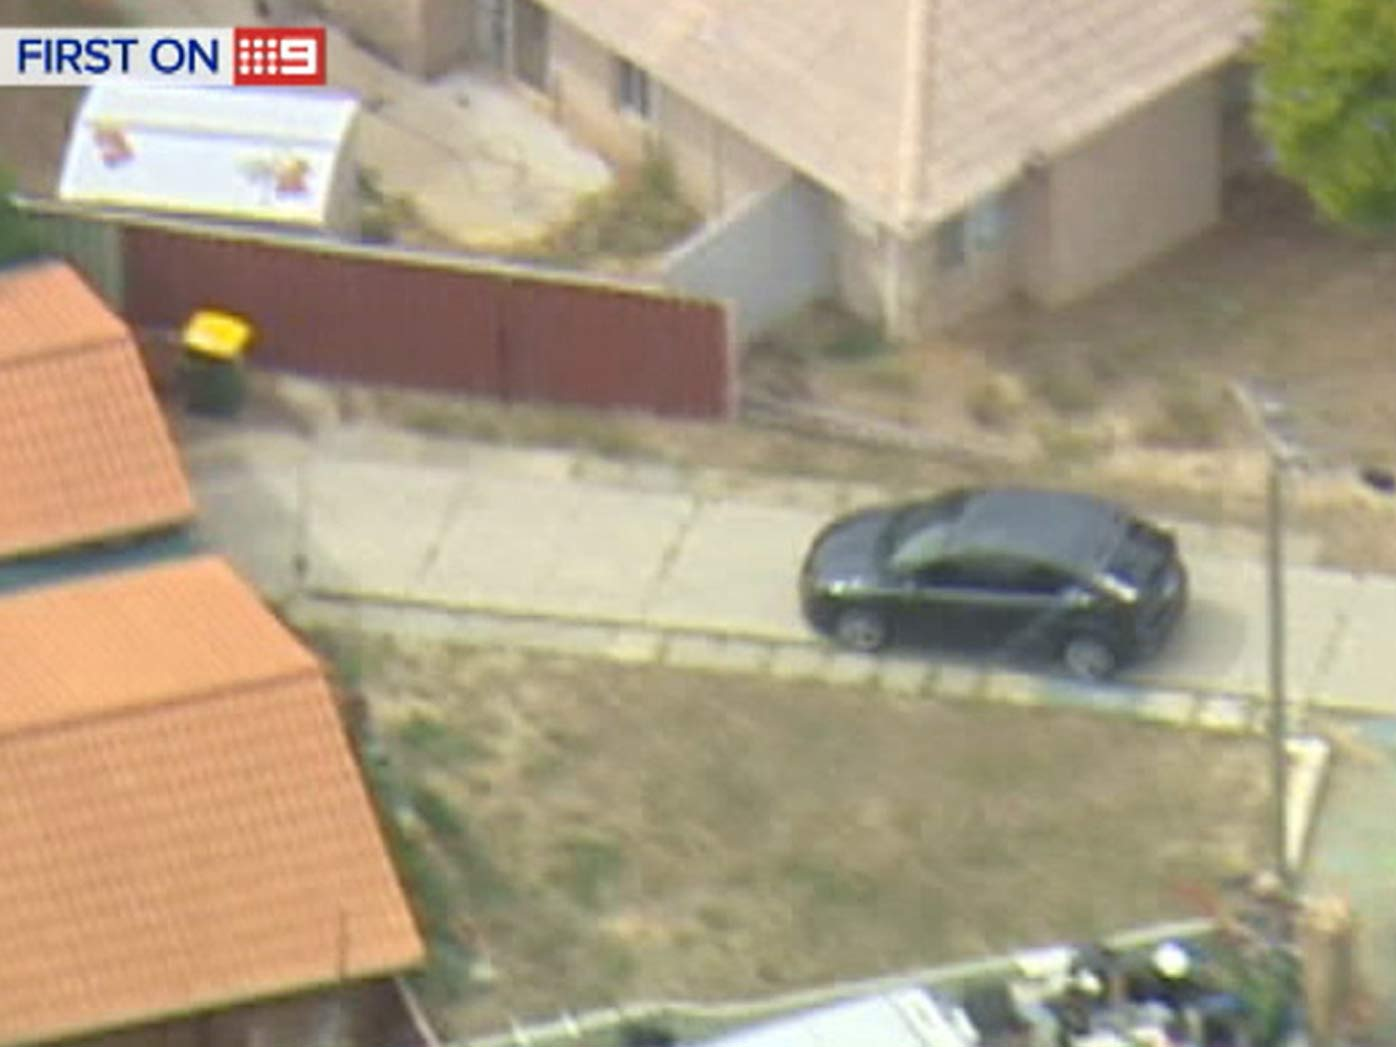 Perth car chase